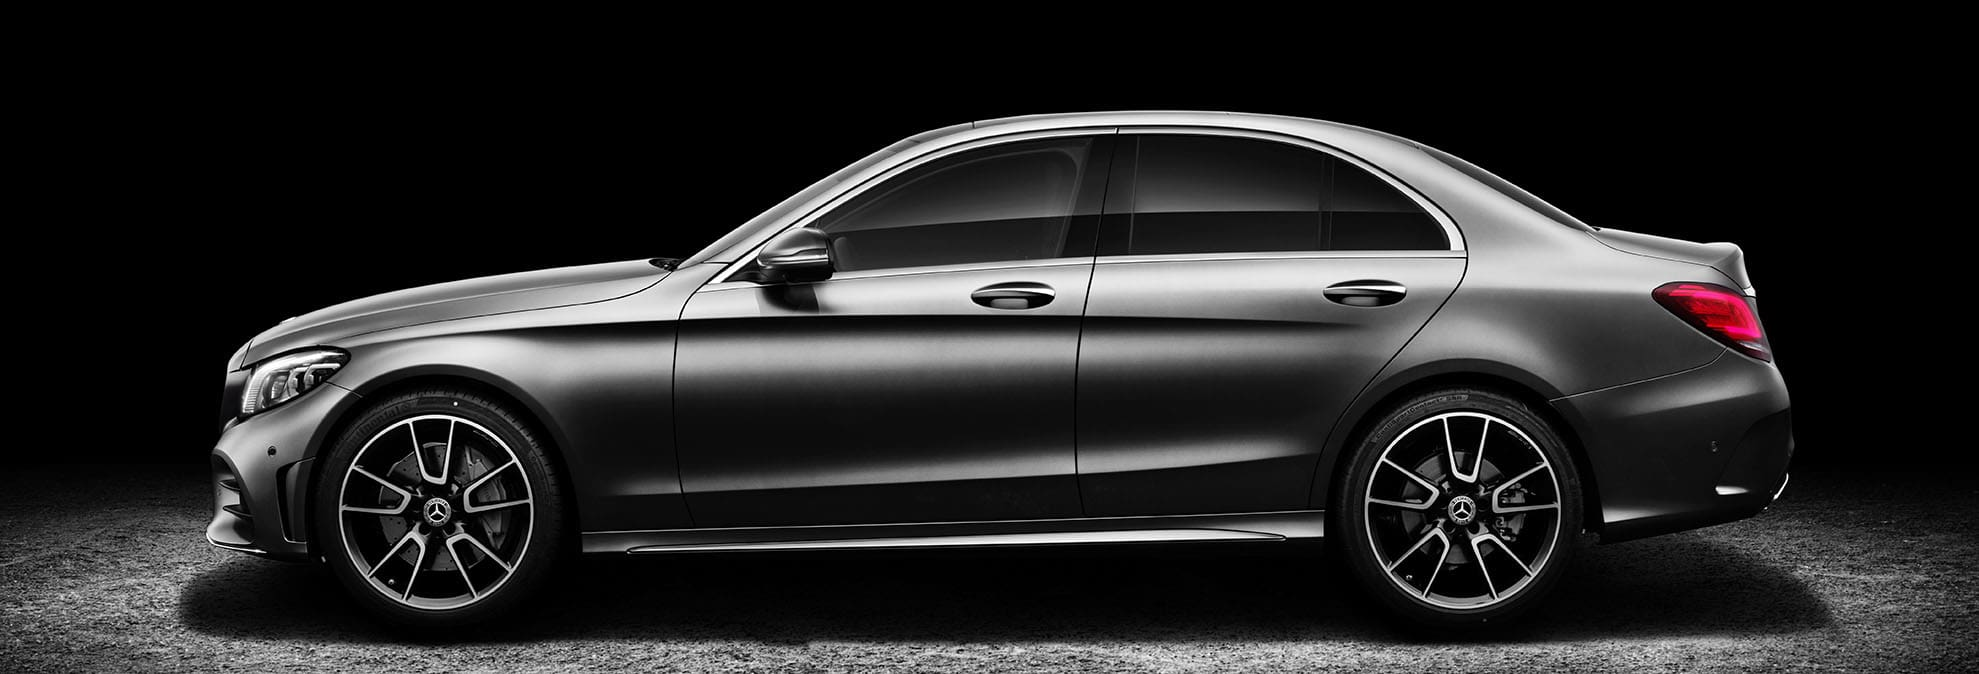 2019 mercedes benz c class preview consumer reports for Mercedes benz c300 consumer reports